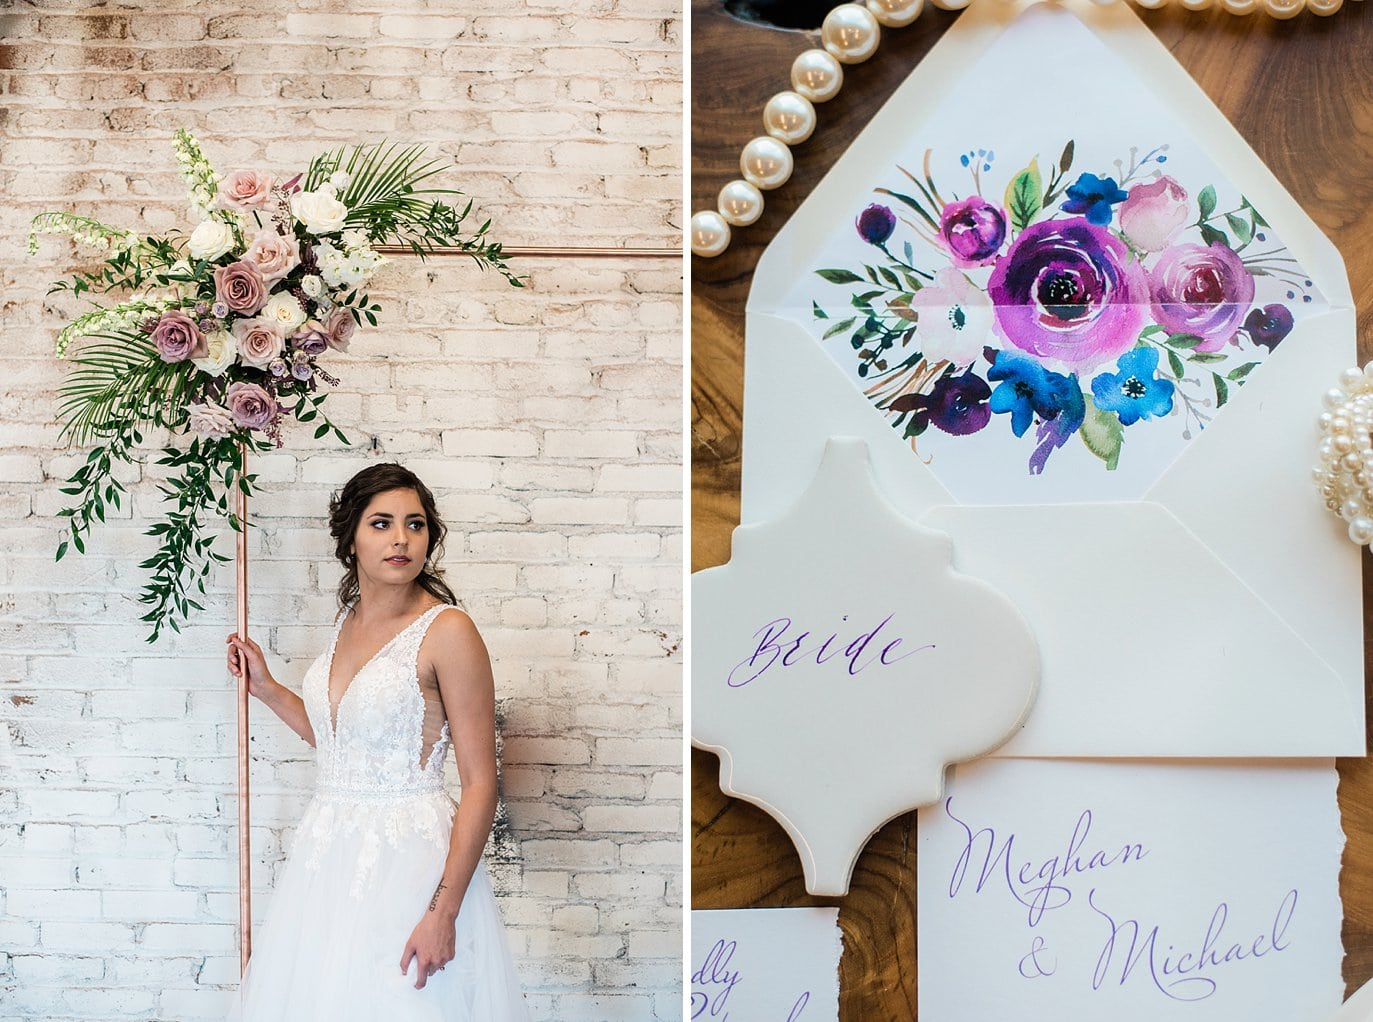 bride by copper pipe ceremony arch and watercolor invitation suite at Shyft Denver wedding by Lyons wedding photographer Jennie Crate